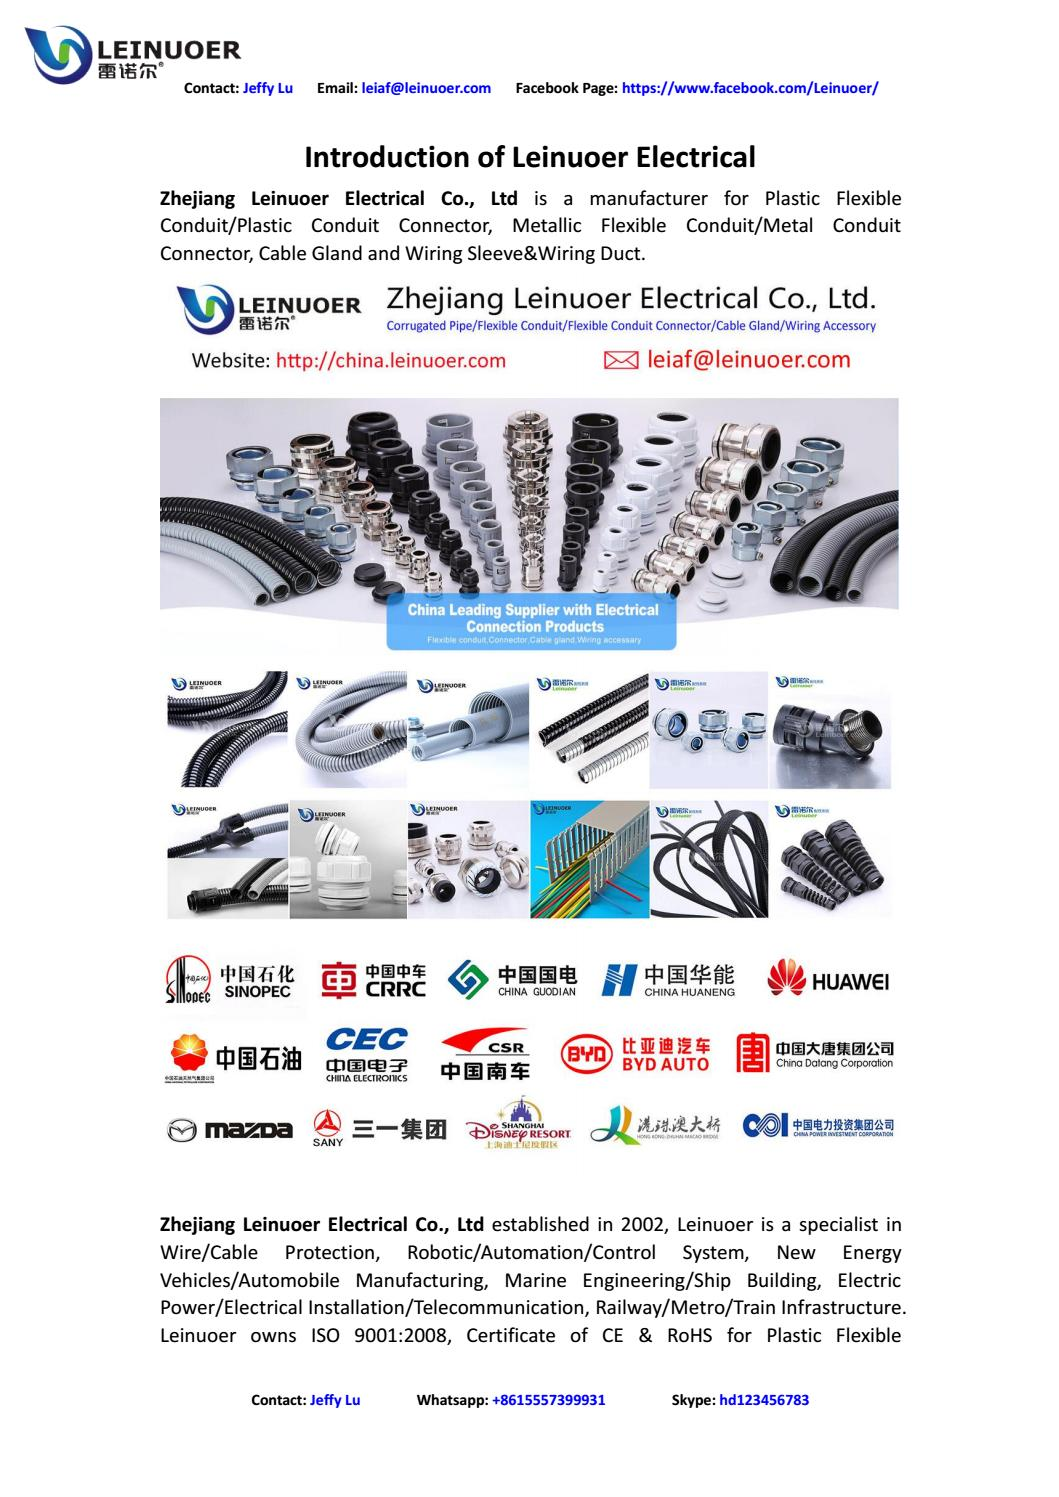 Leinuoer Electrical Profile Cable Protection System By Jeffy Lu Issuu Plastic Flexible Wire Conduit Buy